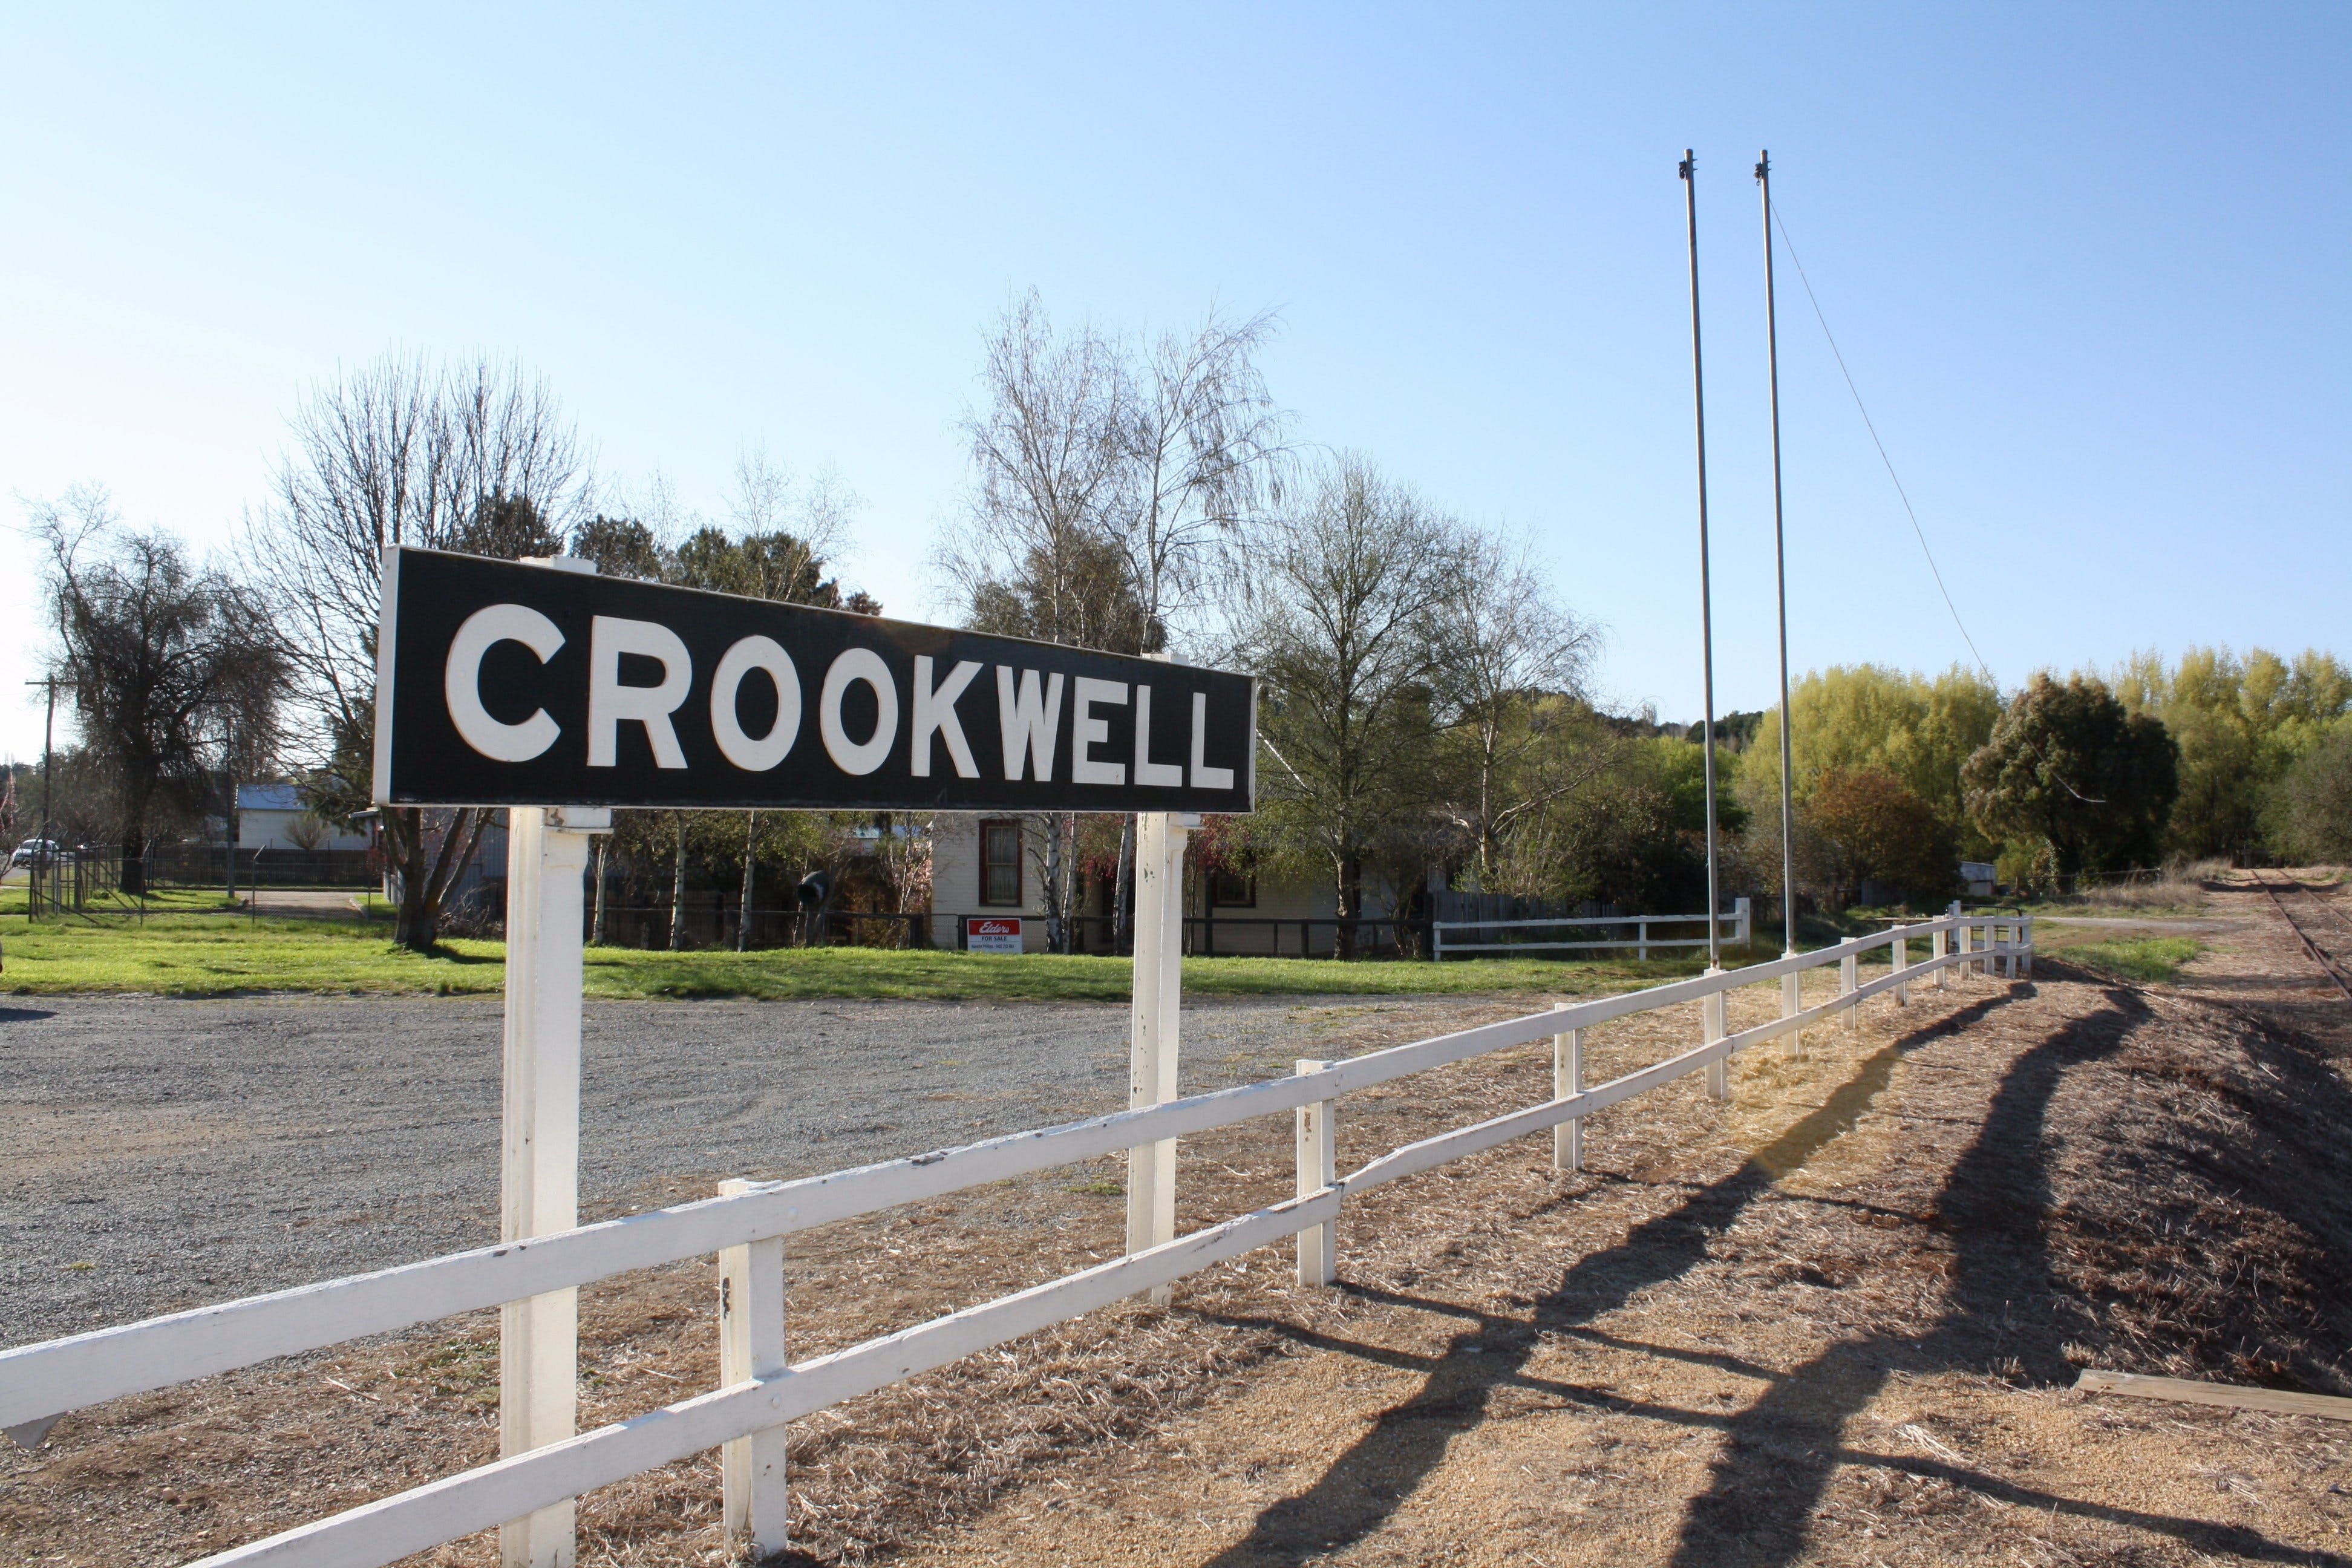 Crookwell Railway Station - Accommodation in Bendigo